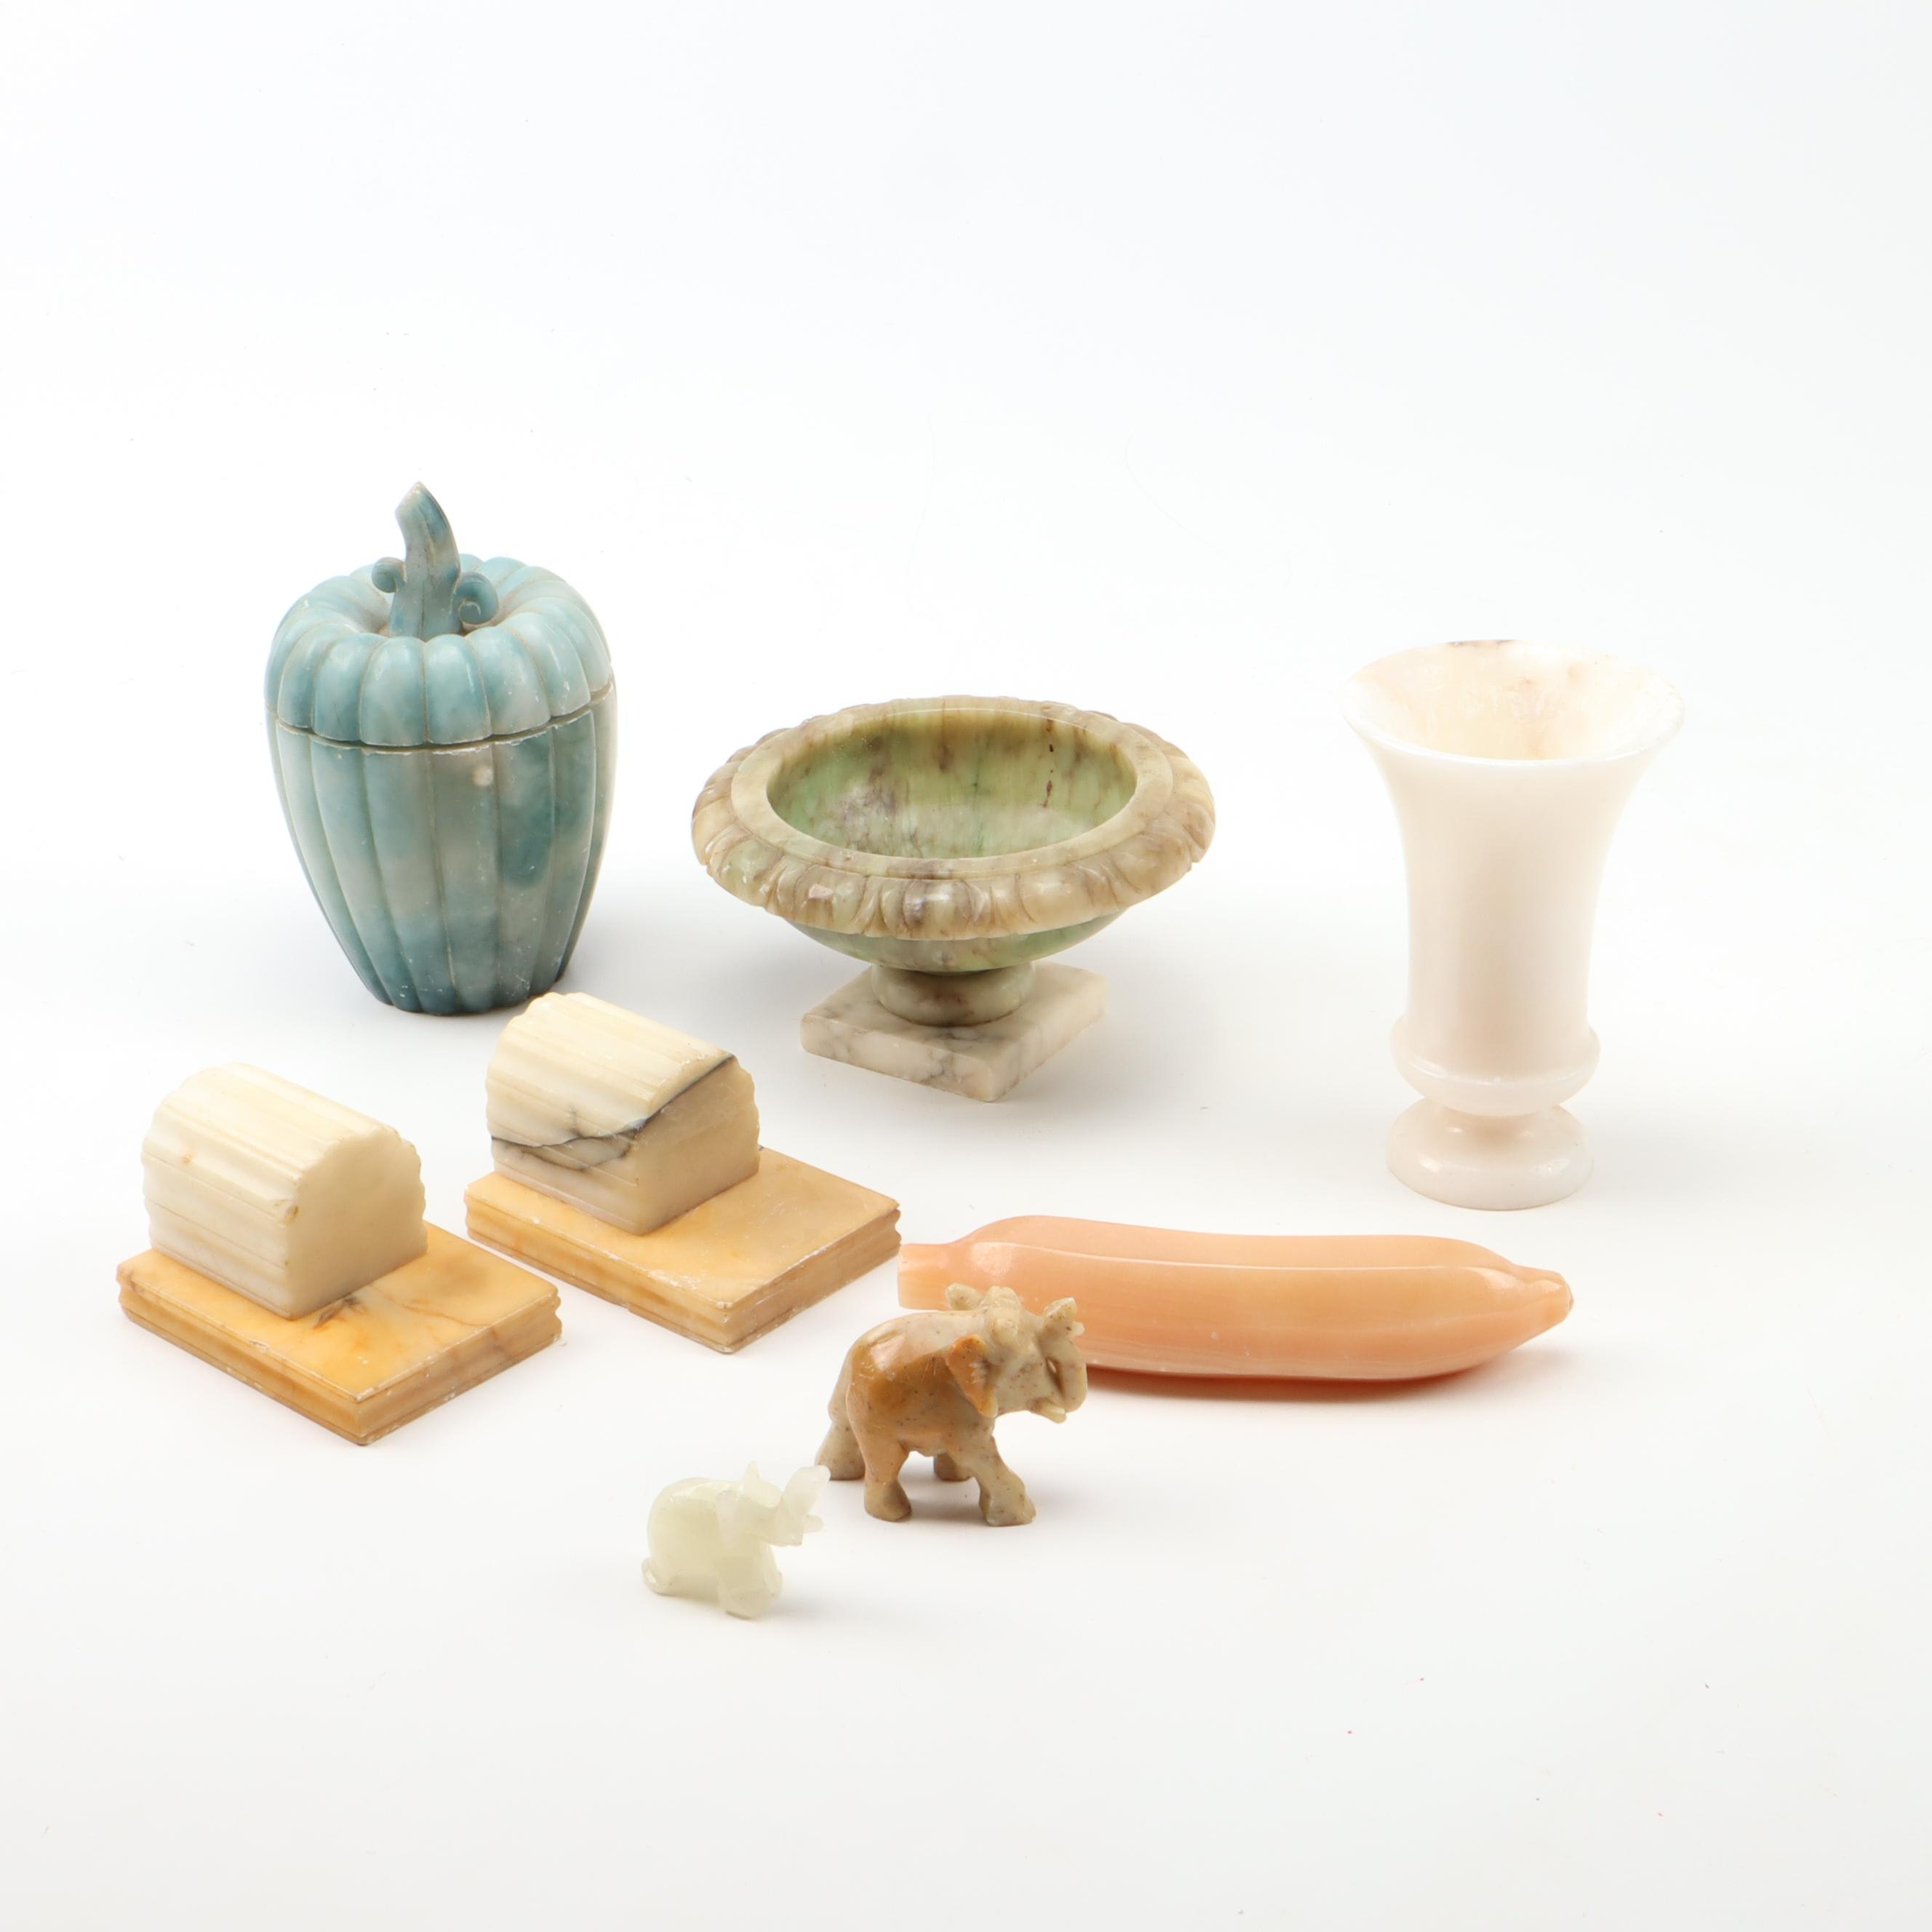 Carved Onyx, Marble, and Stone Containers and Figurines, Vintage